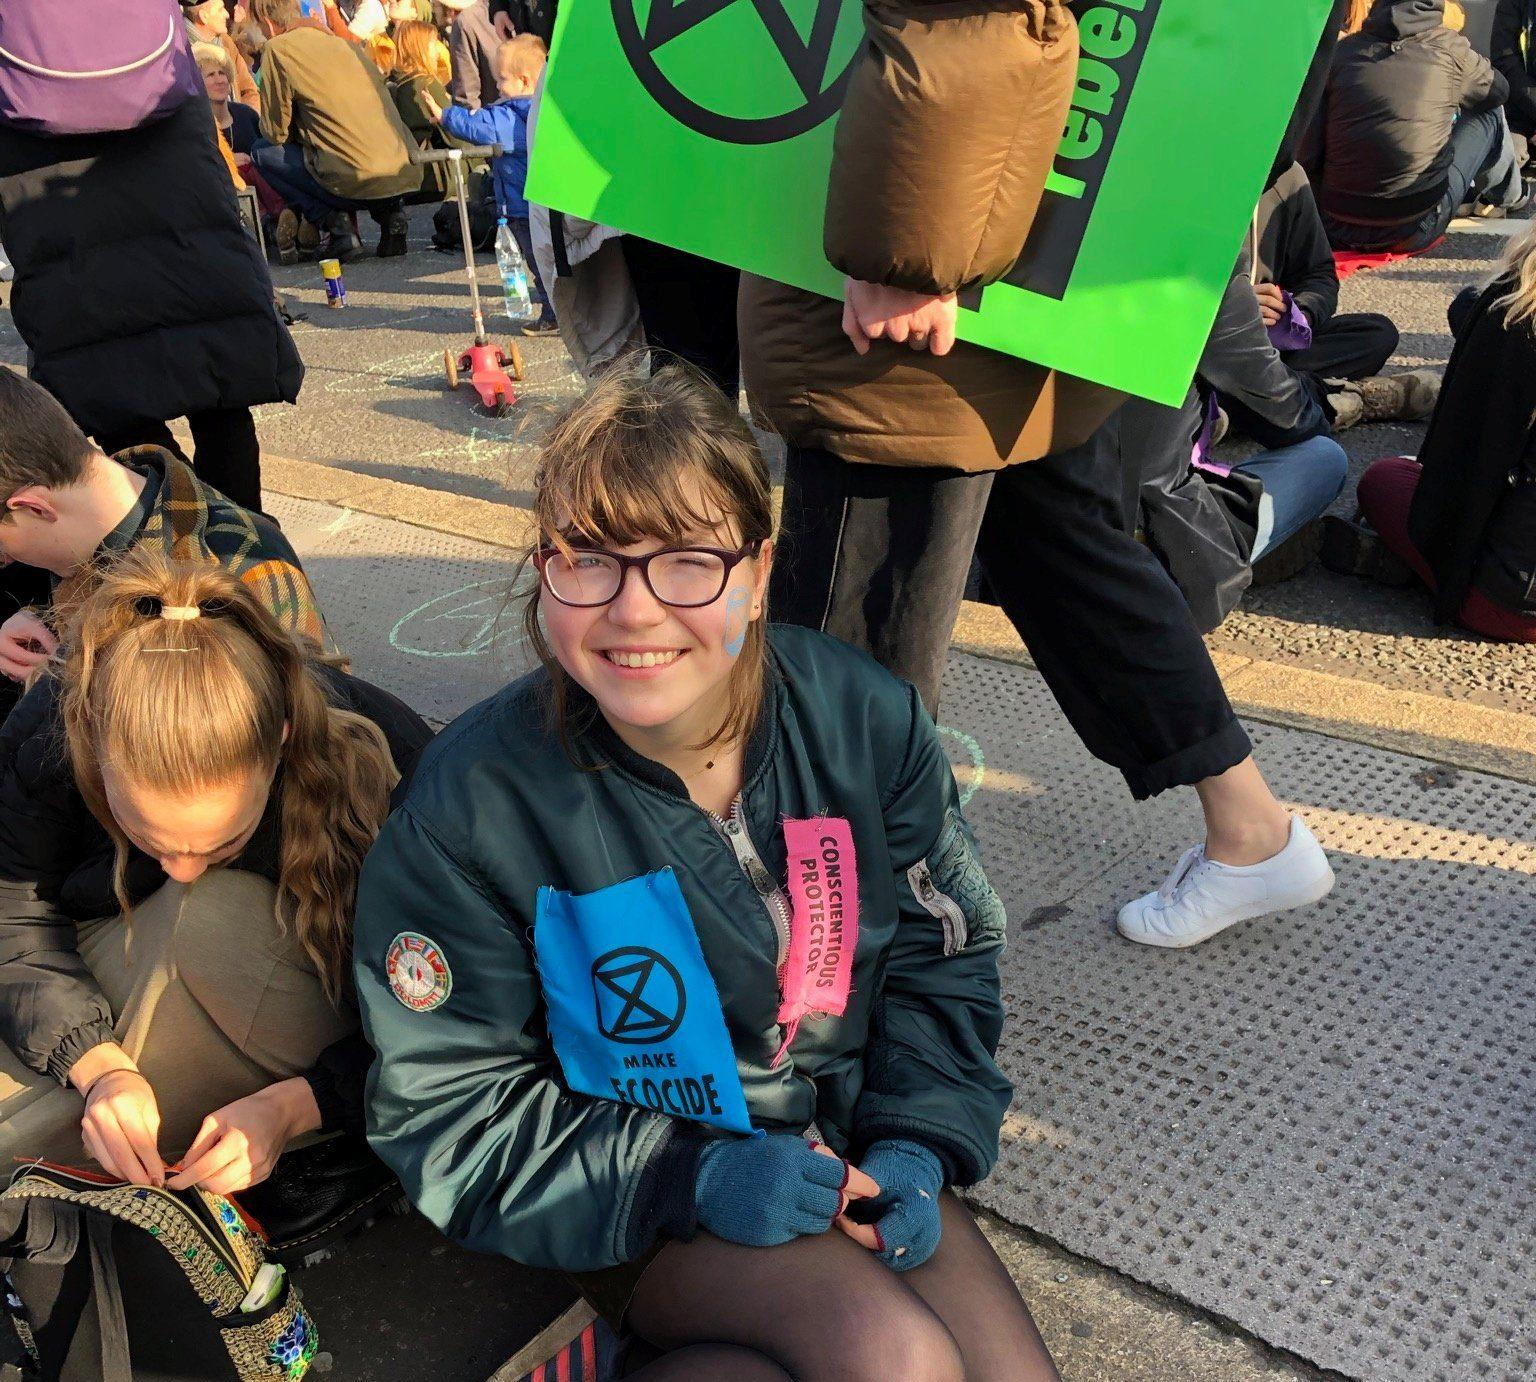 In new book, British teen climate activist urges peers to 'Challenge Everything' - GLOBAL HEROES MAGAZINE